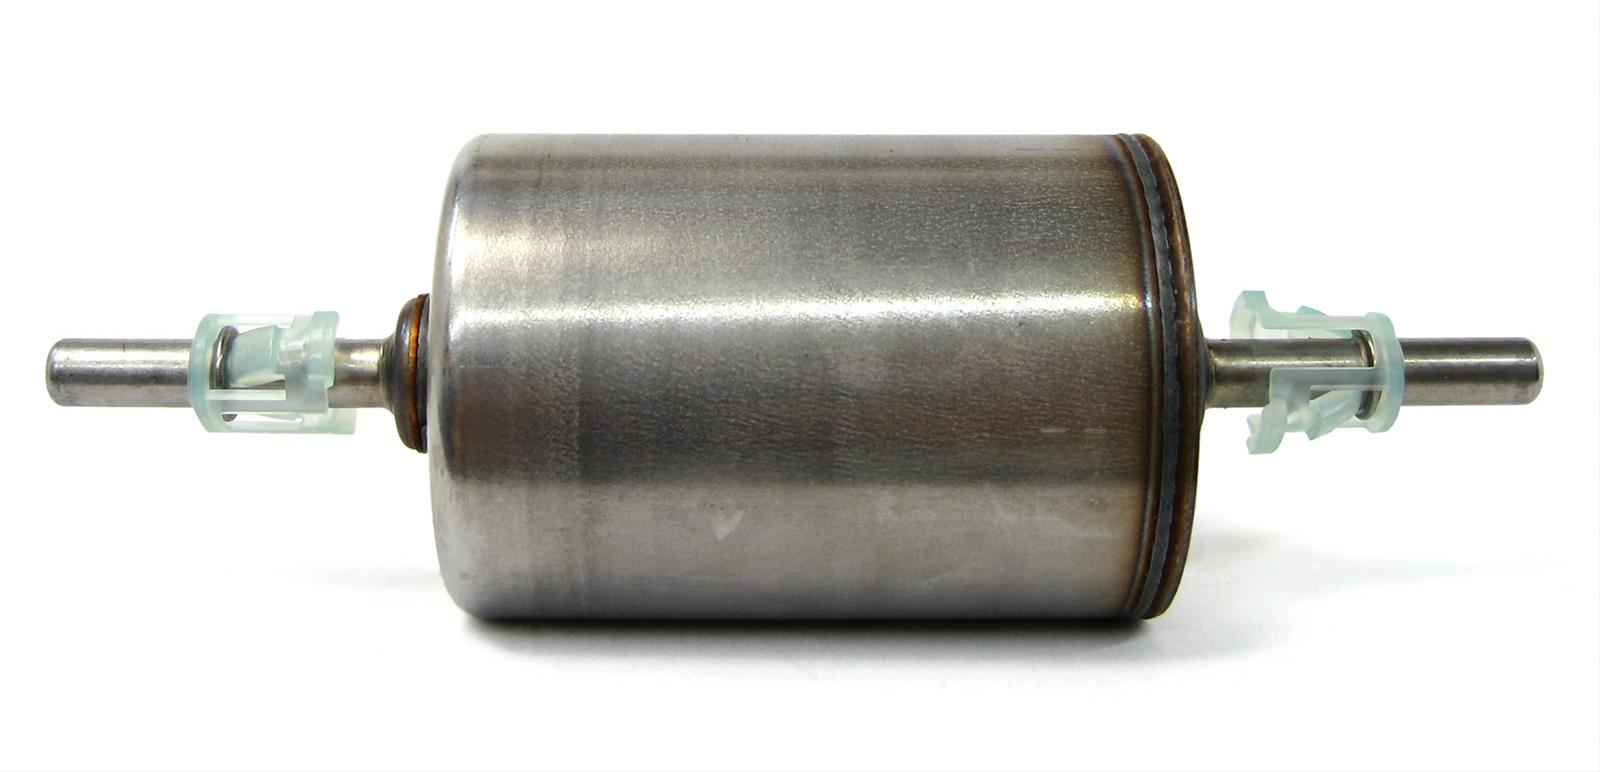 2004 ISUZU AXIOM ACDelco Fuel Filters 88915465 - Free Shipping on Orders  Over $99 at Summit Racing